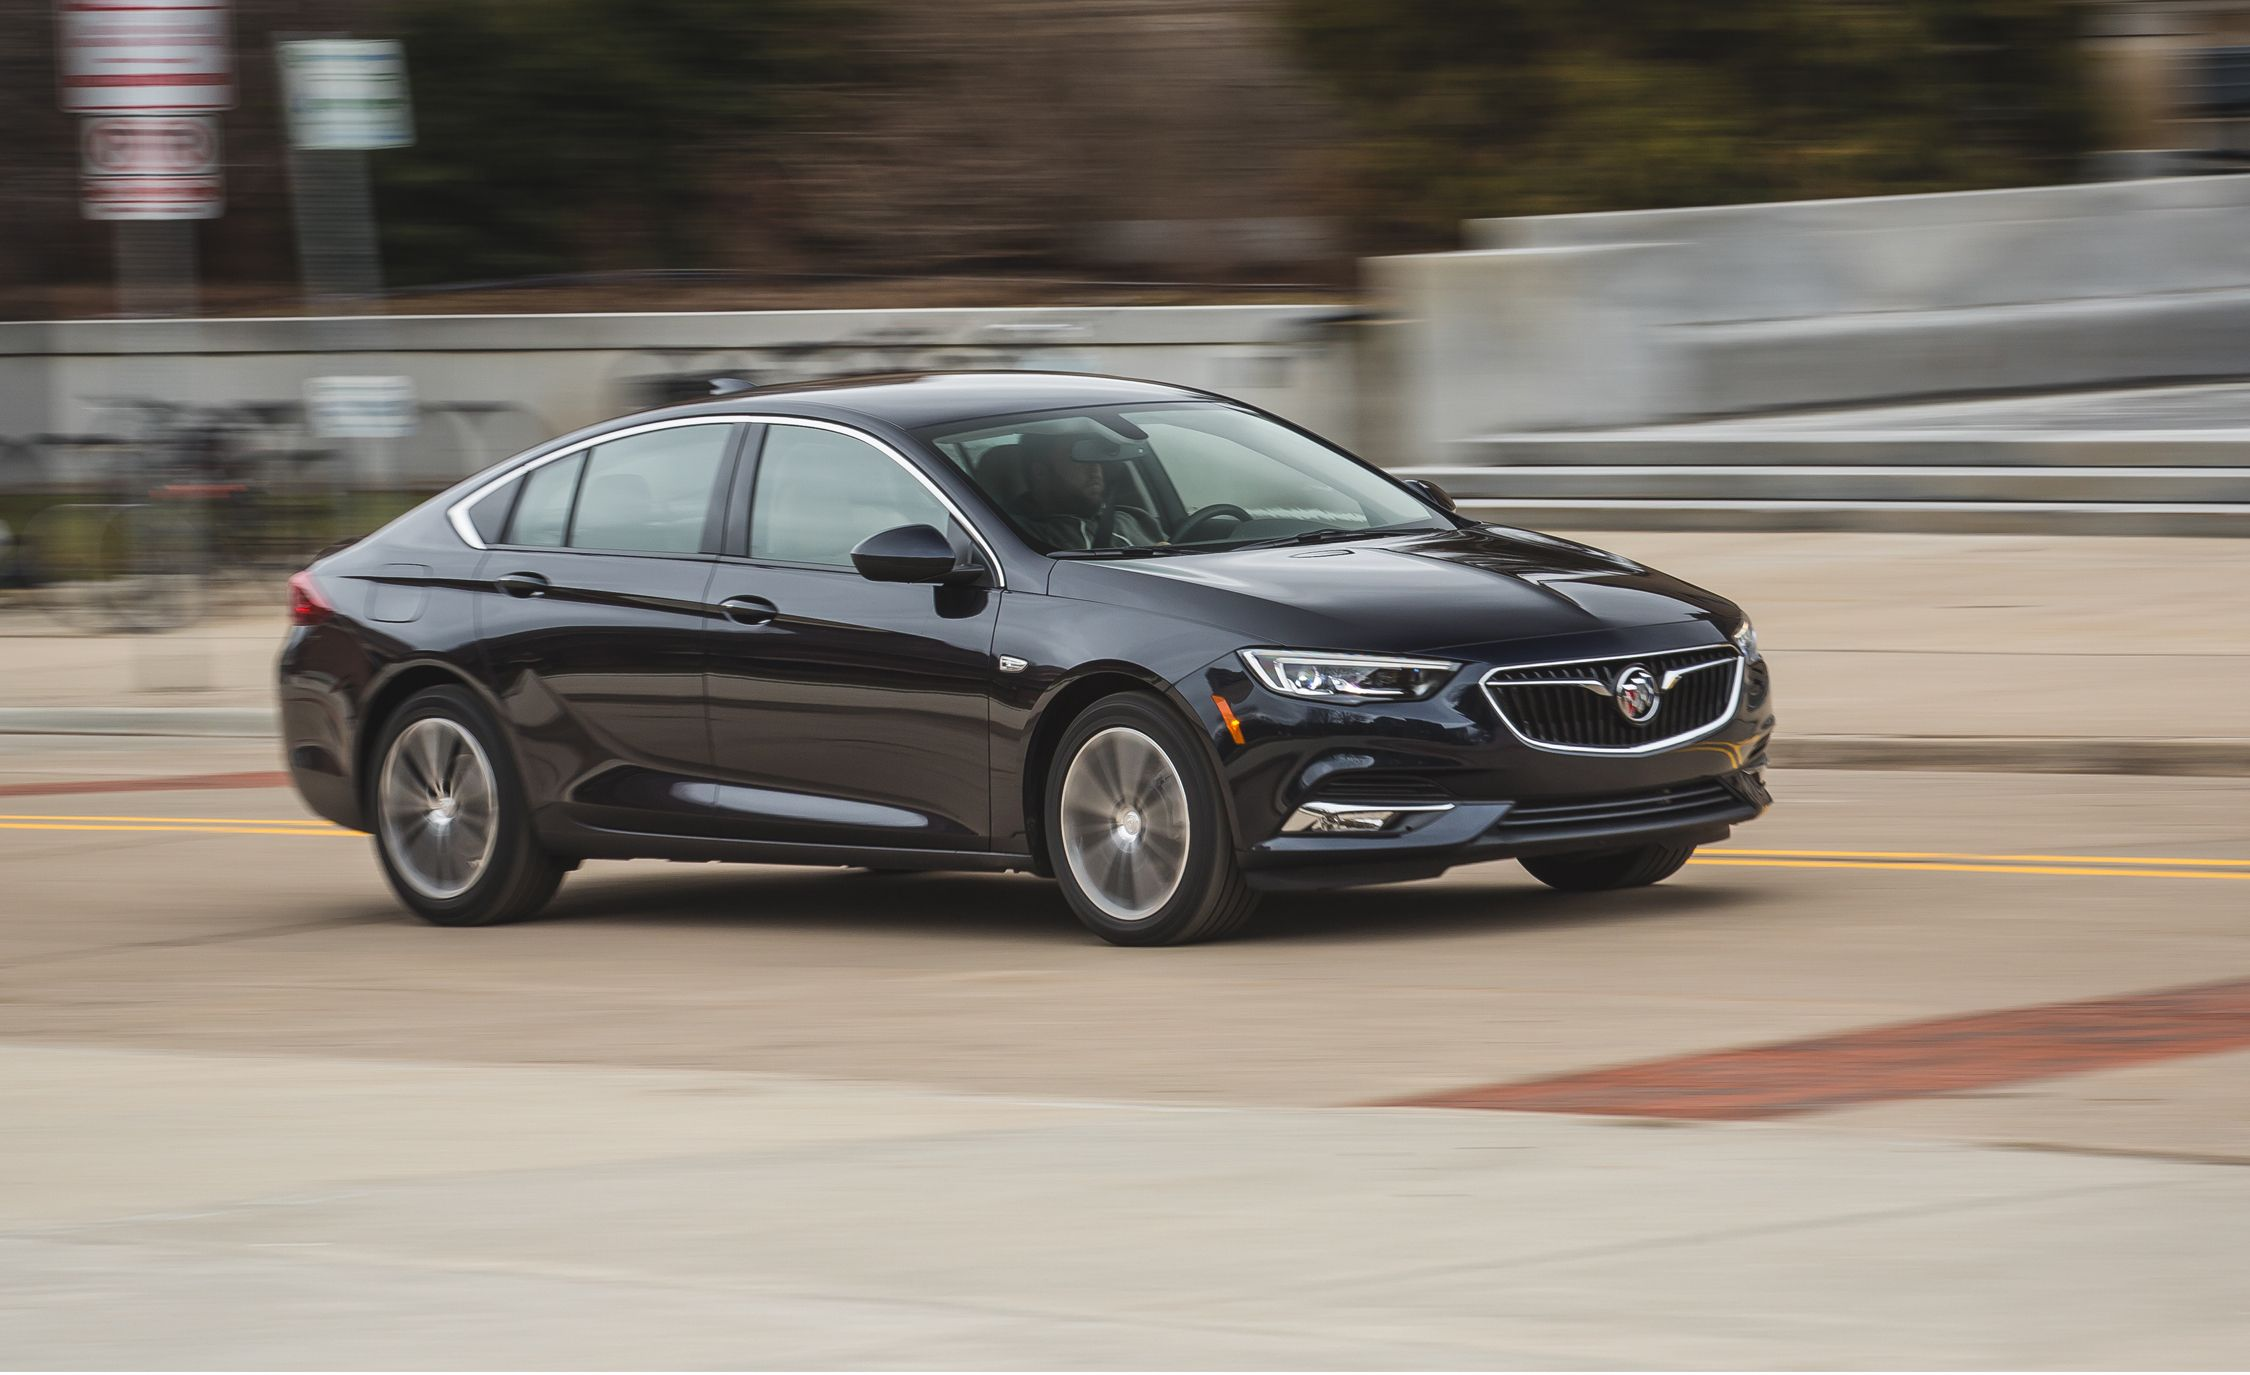 2019 Buick Regal Sportback Reviews Buick Regal Sportback Price